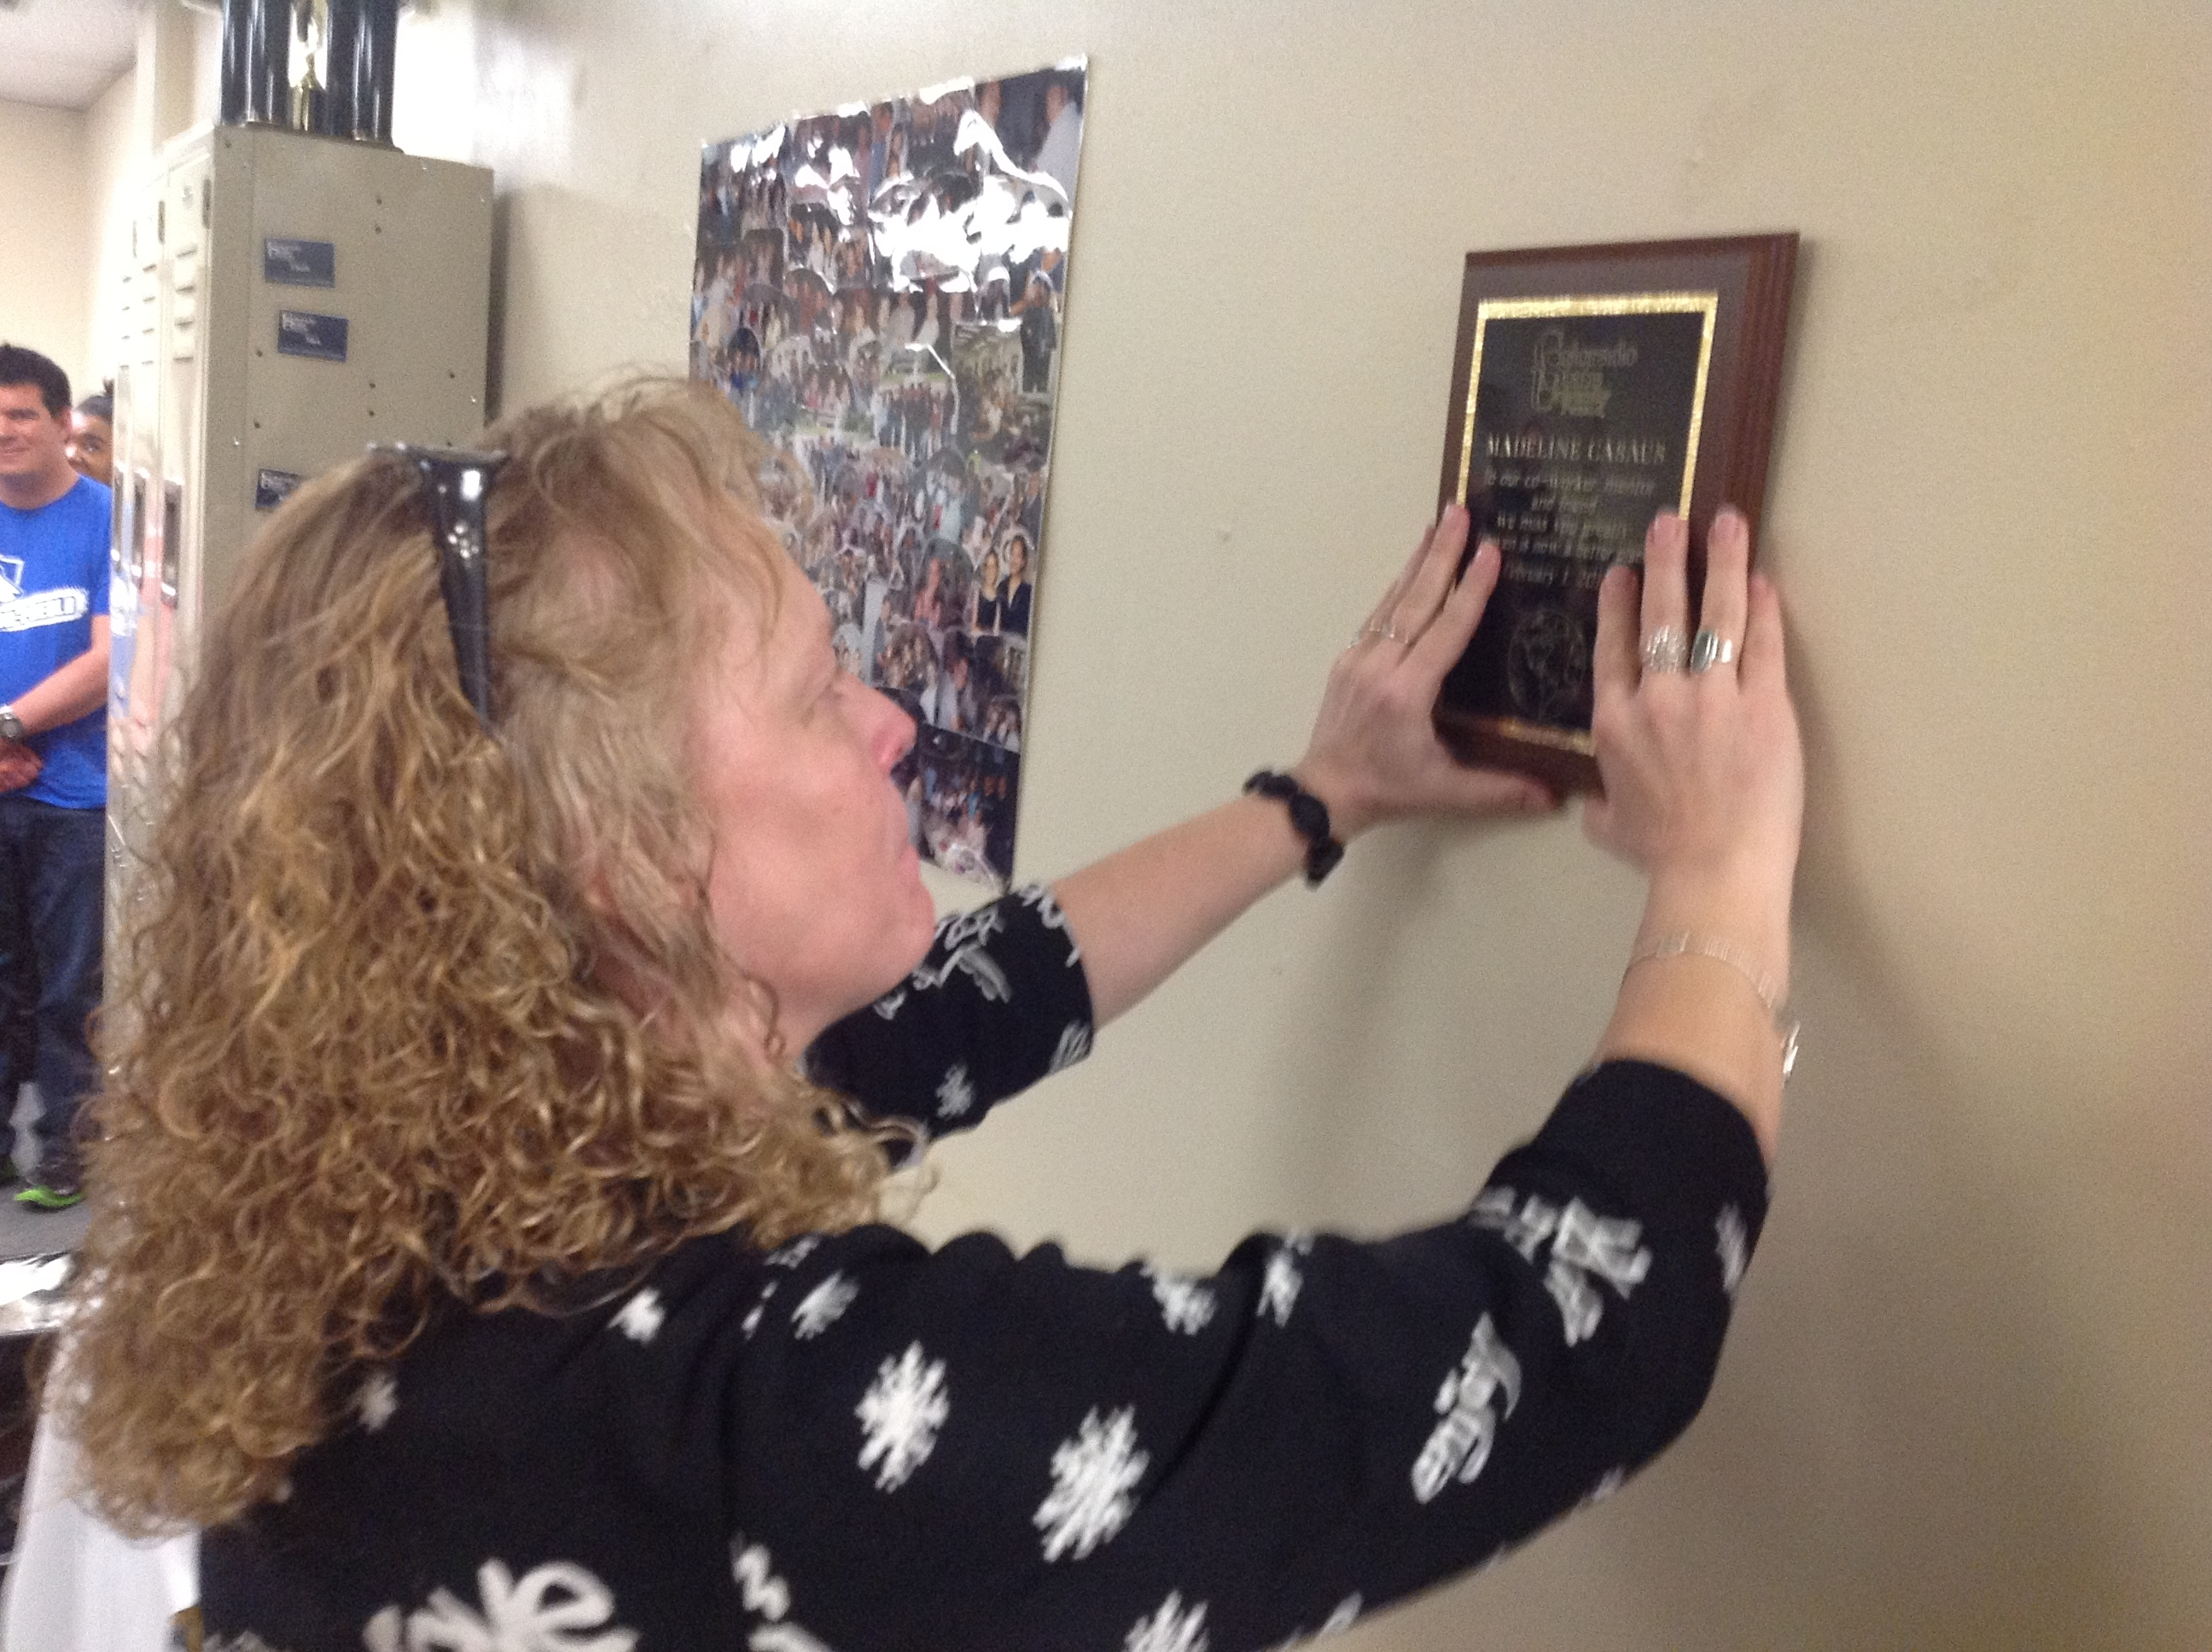 Director of Center for International Progrms, Annie Williams, placing Madeline Casis's plaque on the wall of new international students' lounge. Photo courtesy of Talha Qureshi